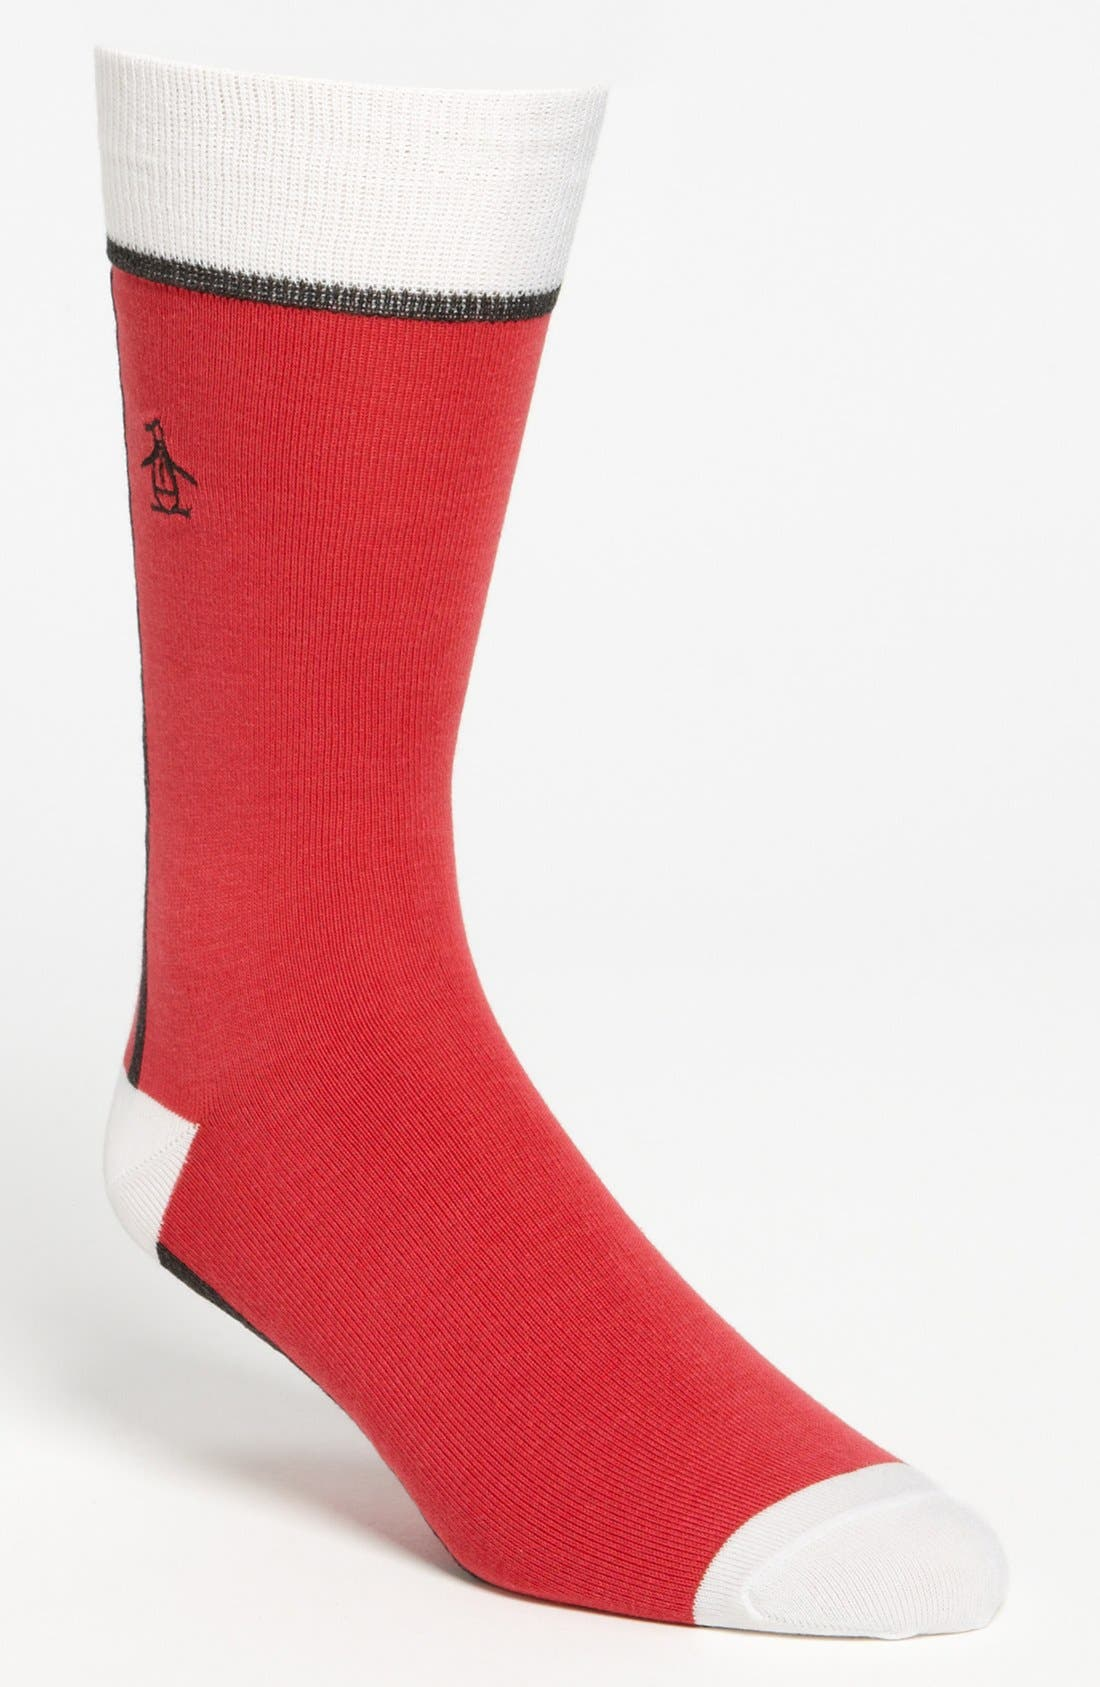 Main Image - Original Penguin Socks